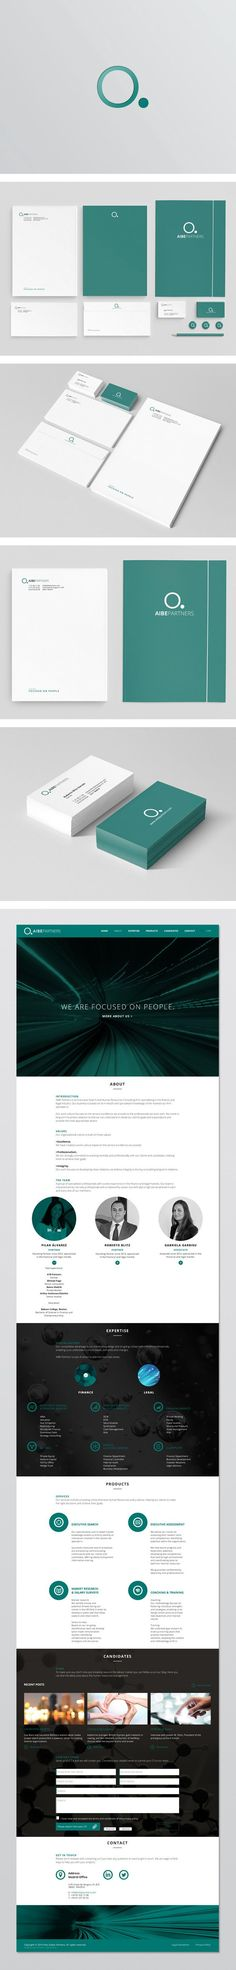 Aibe Partners themes includes, branding, corporate identity and design to attract domestic and international clients.